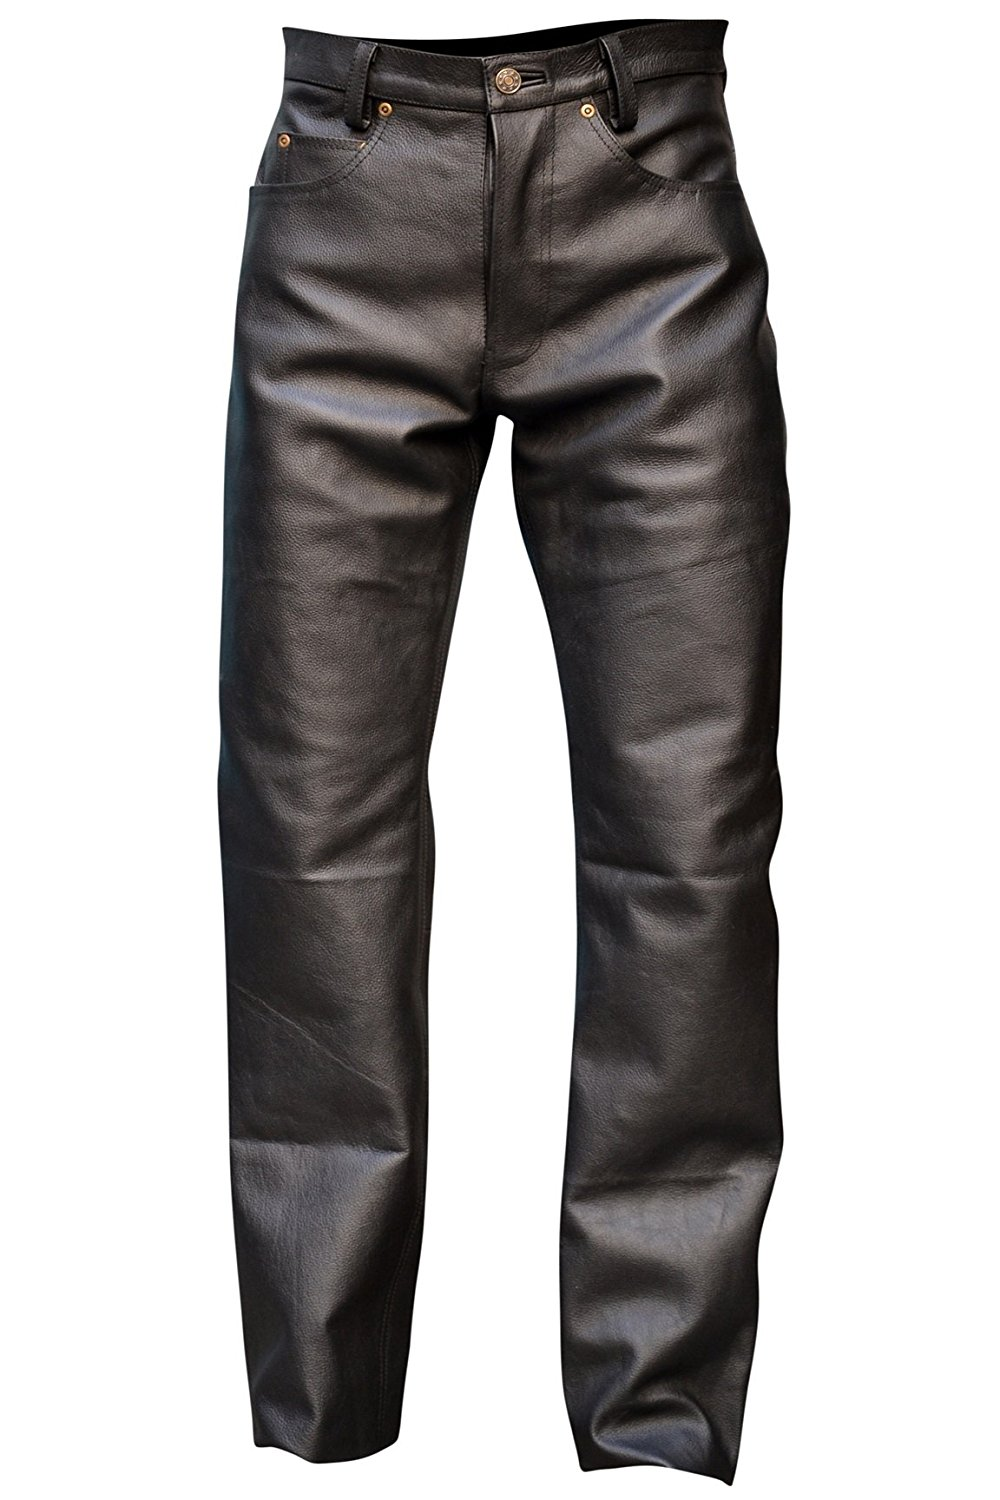 You searched for: black leather pants! Etsy is the home to thousands of handmade, vintage, and one-of-a-kind products and gifts related to your search. Wilsons Mens/Womens Black leather Chaps, Unisex Motorcycle Pants, Heavy Leather Chaps, Leather Motorcycle Pants, motorcycle chaps AphroditesAntiques. 5 out of 5 stars () $